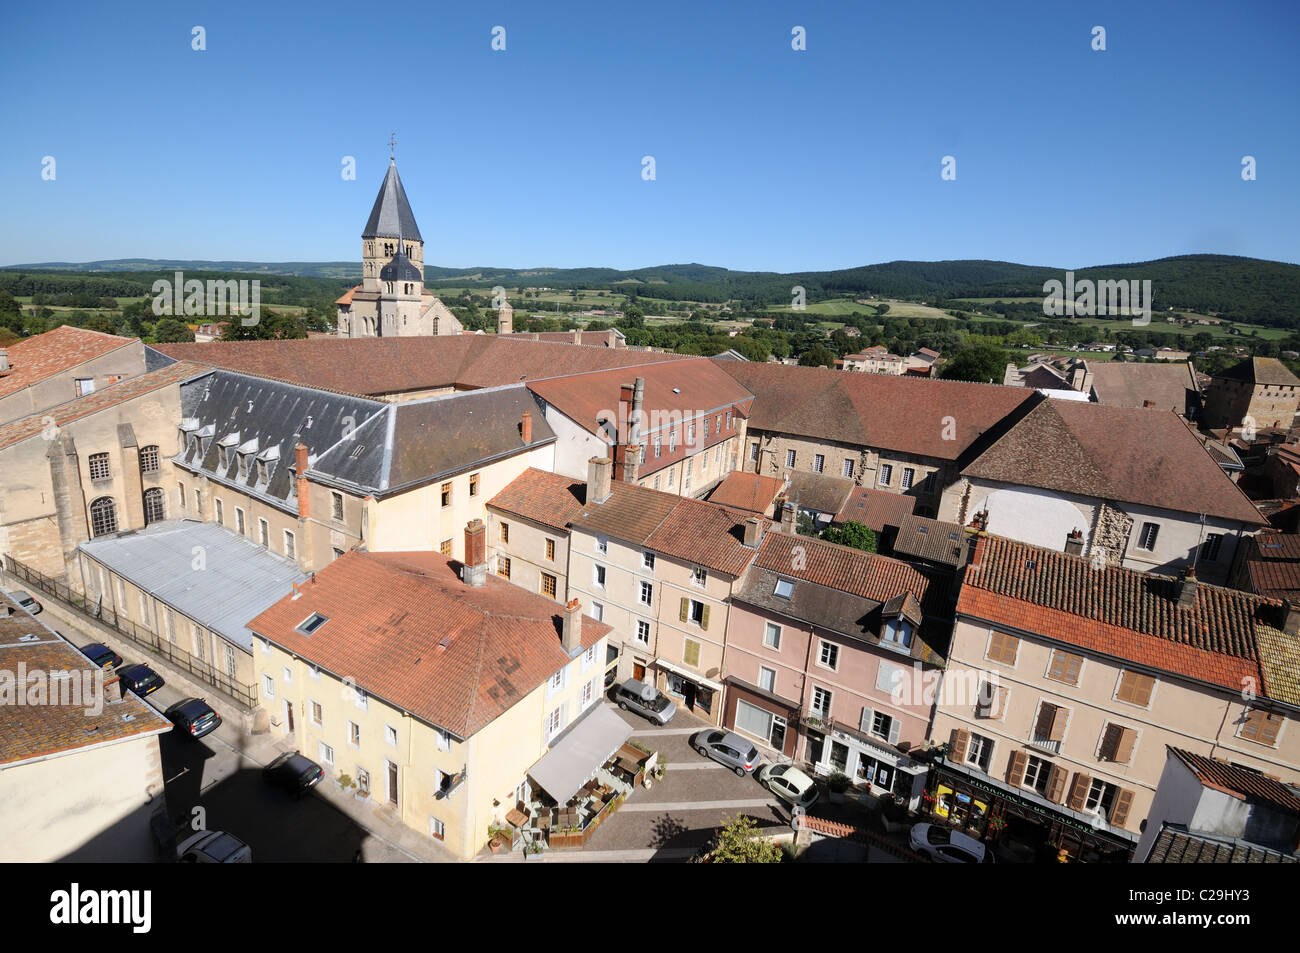 Cluny Abbey seen from Tower of Cheese or Tour de Fromage Cluny Burgundy France Bourgogne - Stock Image